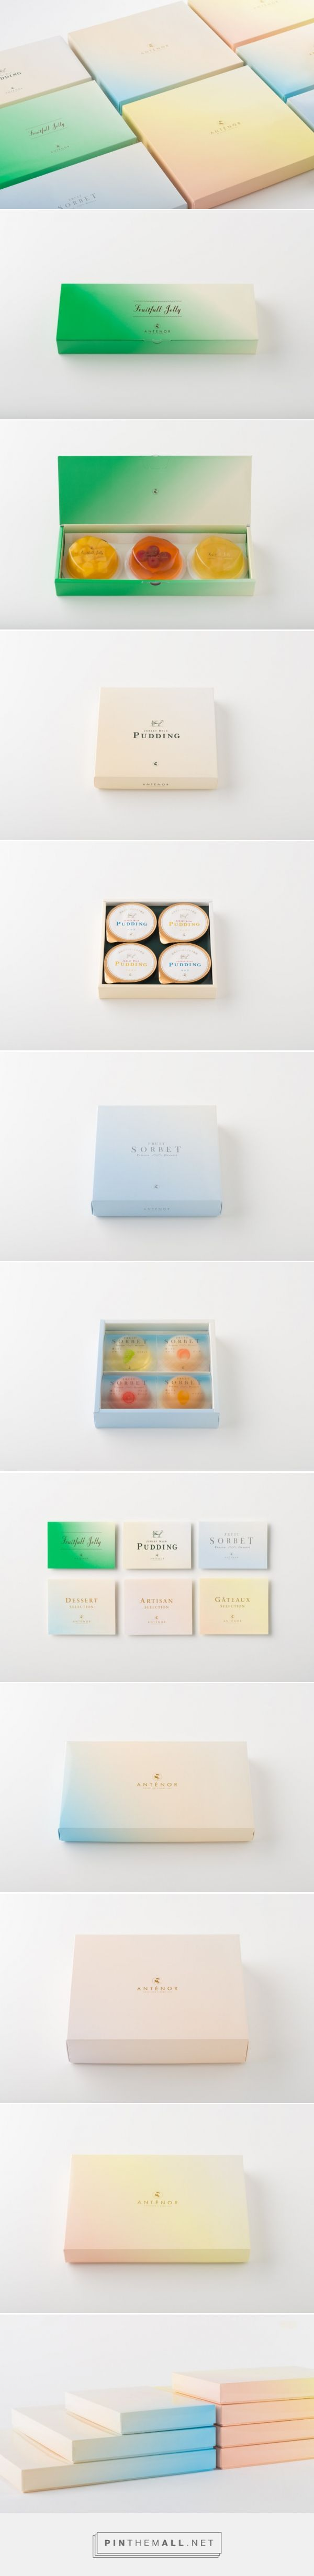 ANTÉNOR SUMMER GIFT  :   UMA / design farm - created via https://pinthemall.net